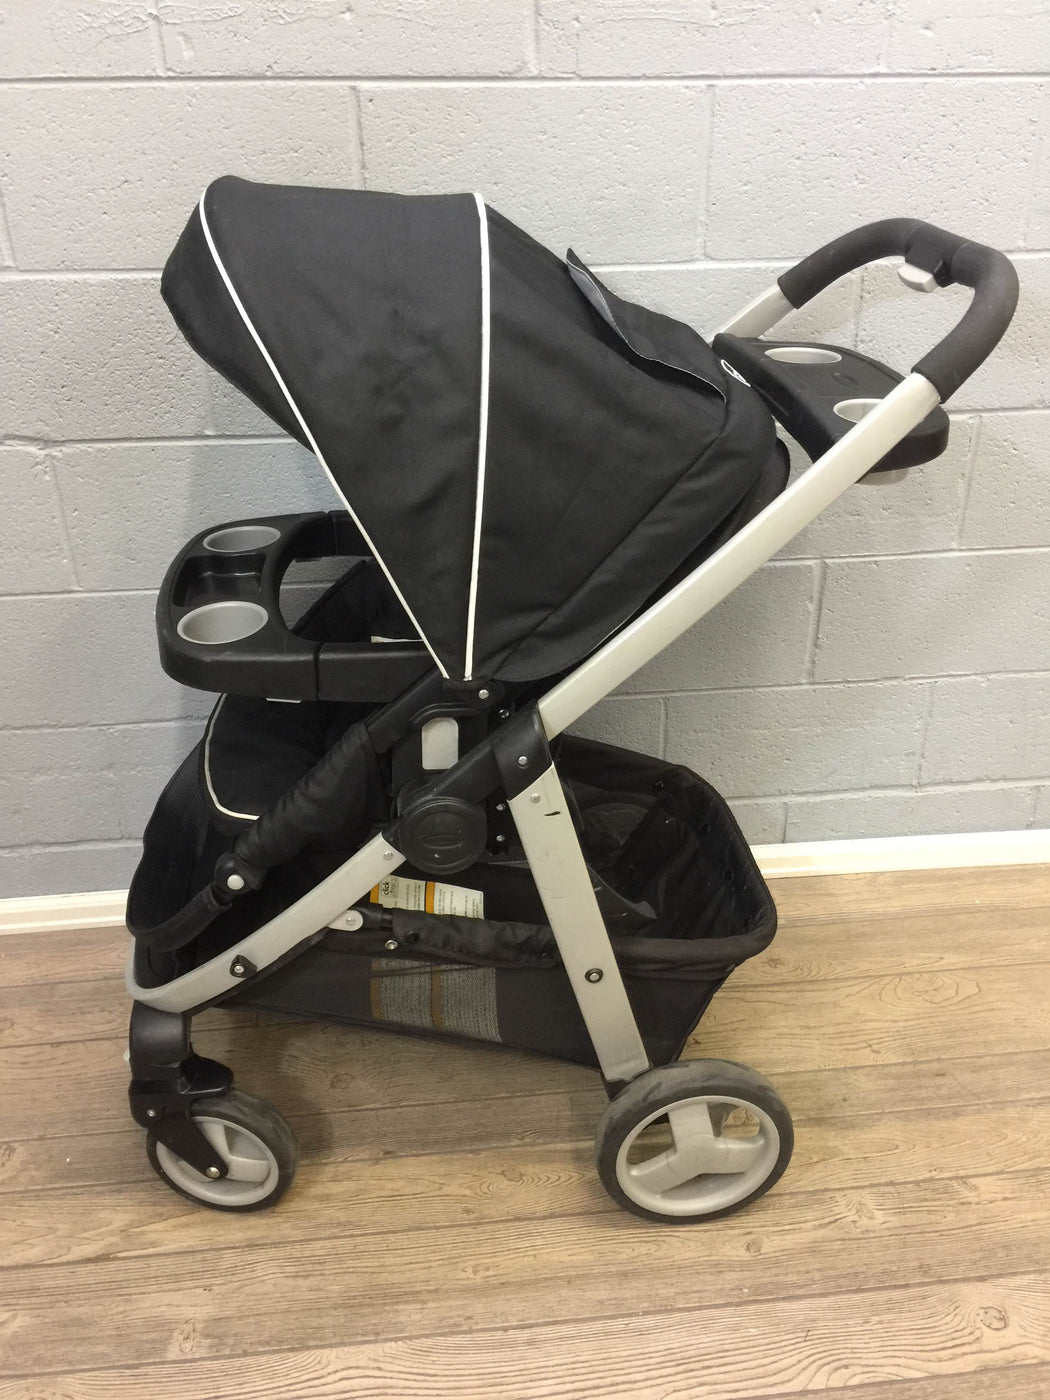 secondhand Graco Modes Click Connect Stroller, 2013